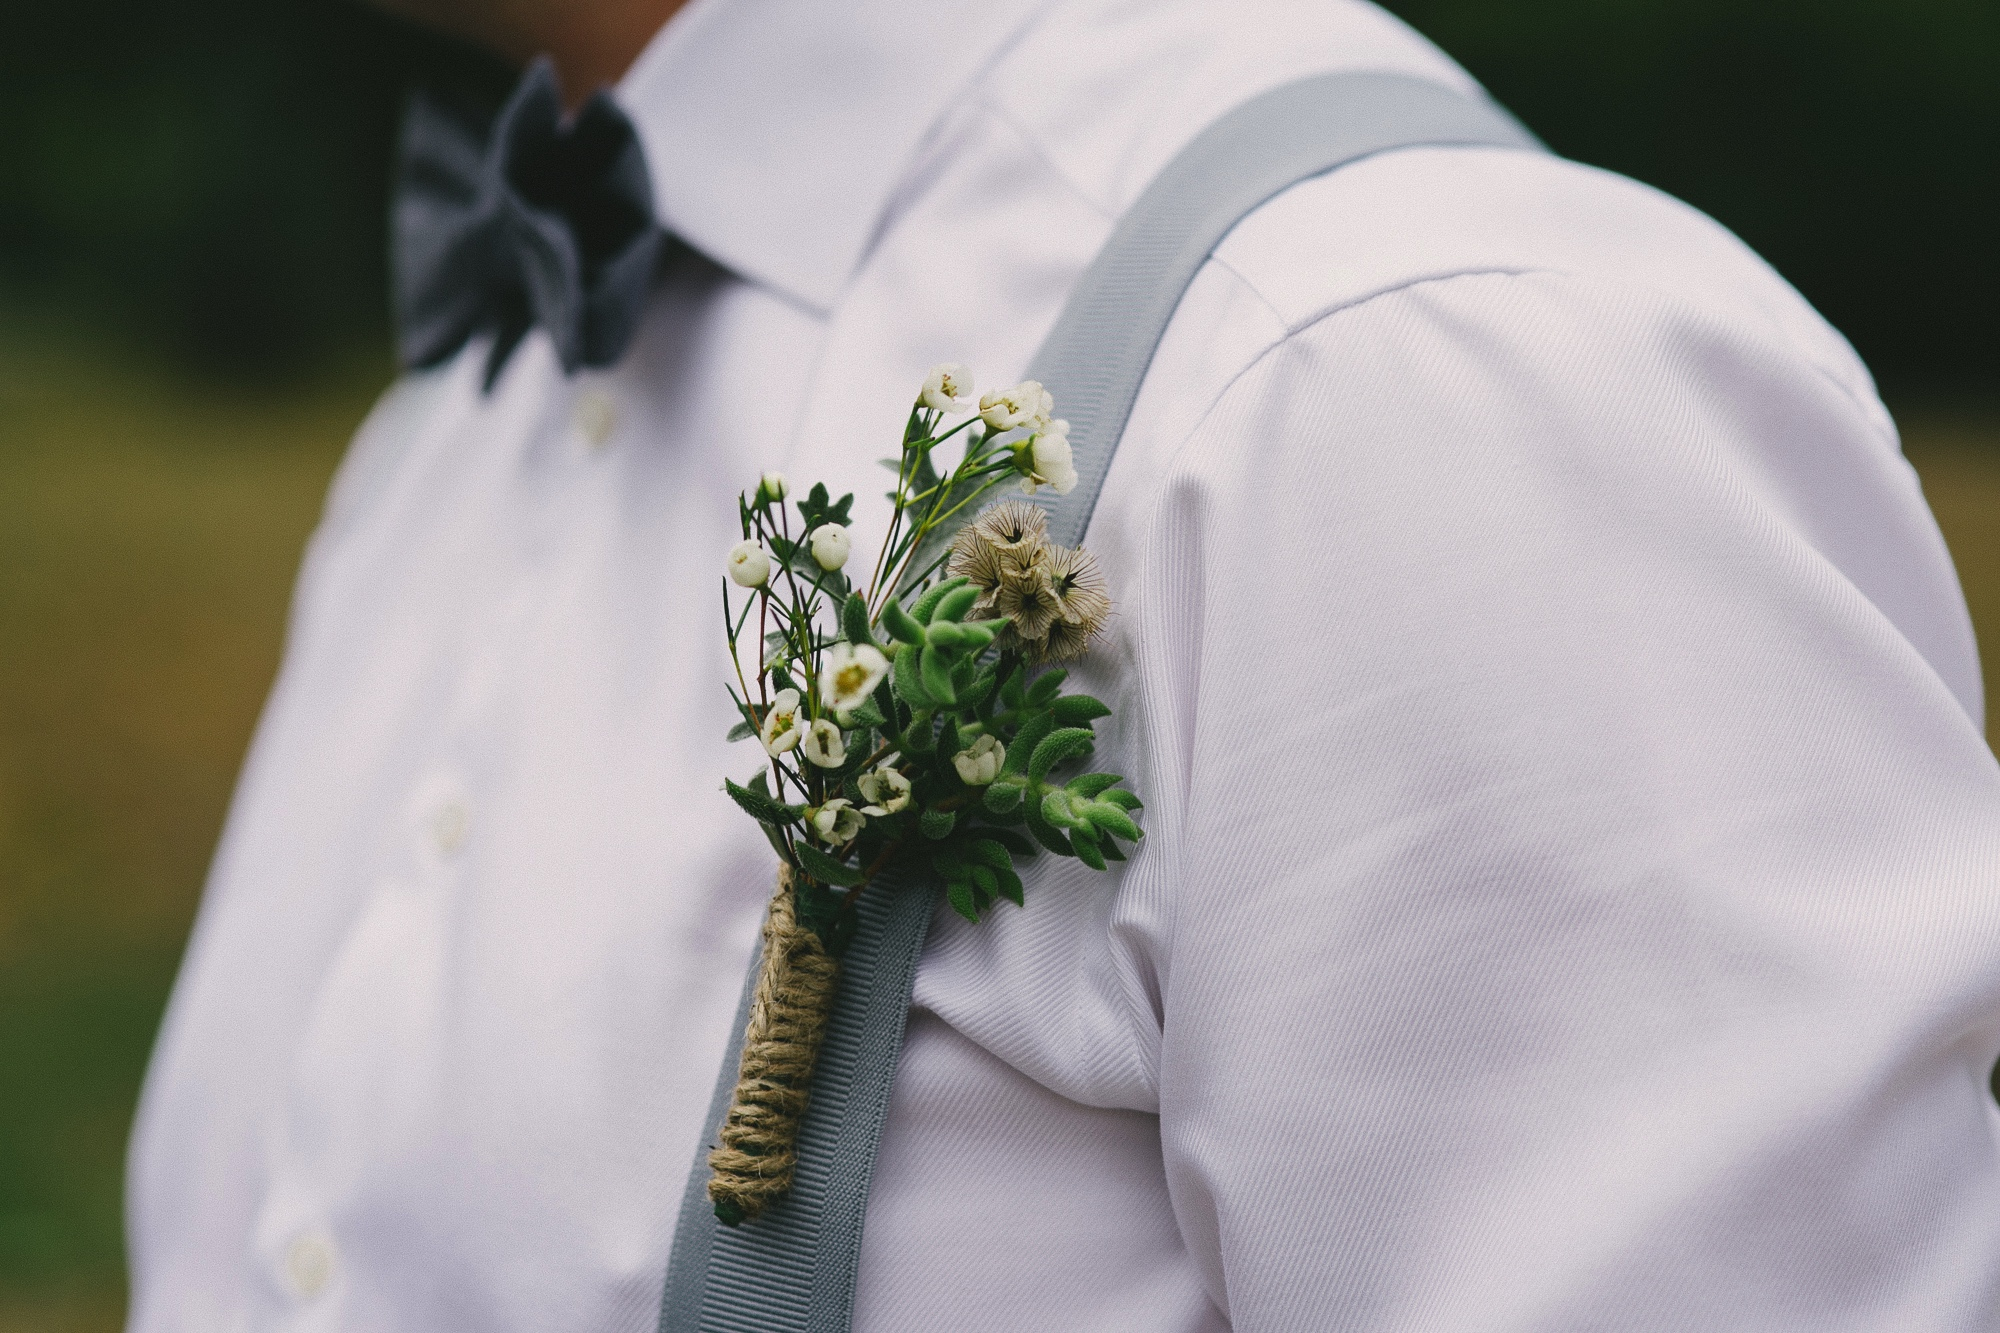 Boutonnier by Floral Design by Lili ,  Vancouver wedding Florist ,Image by Sara Rogers Photography